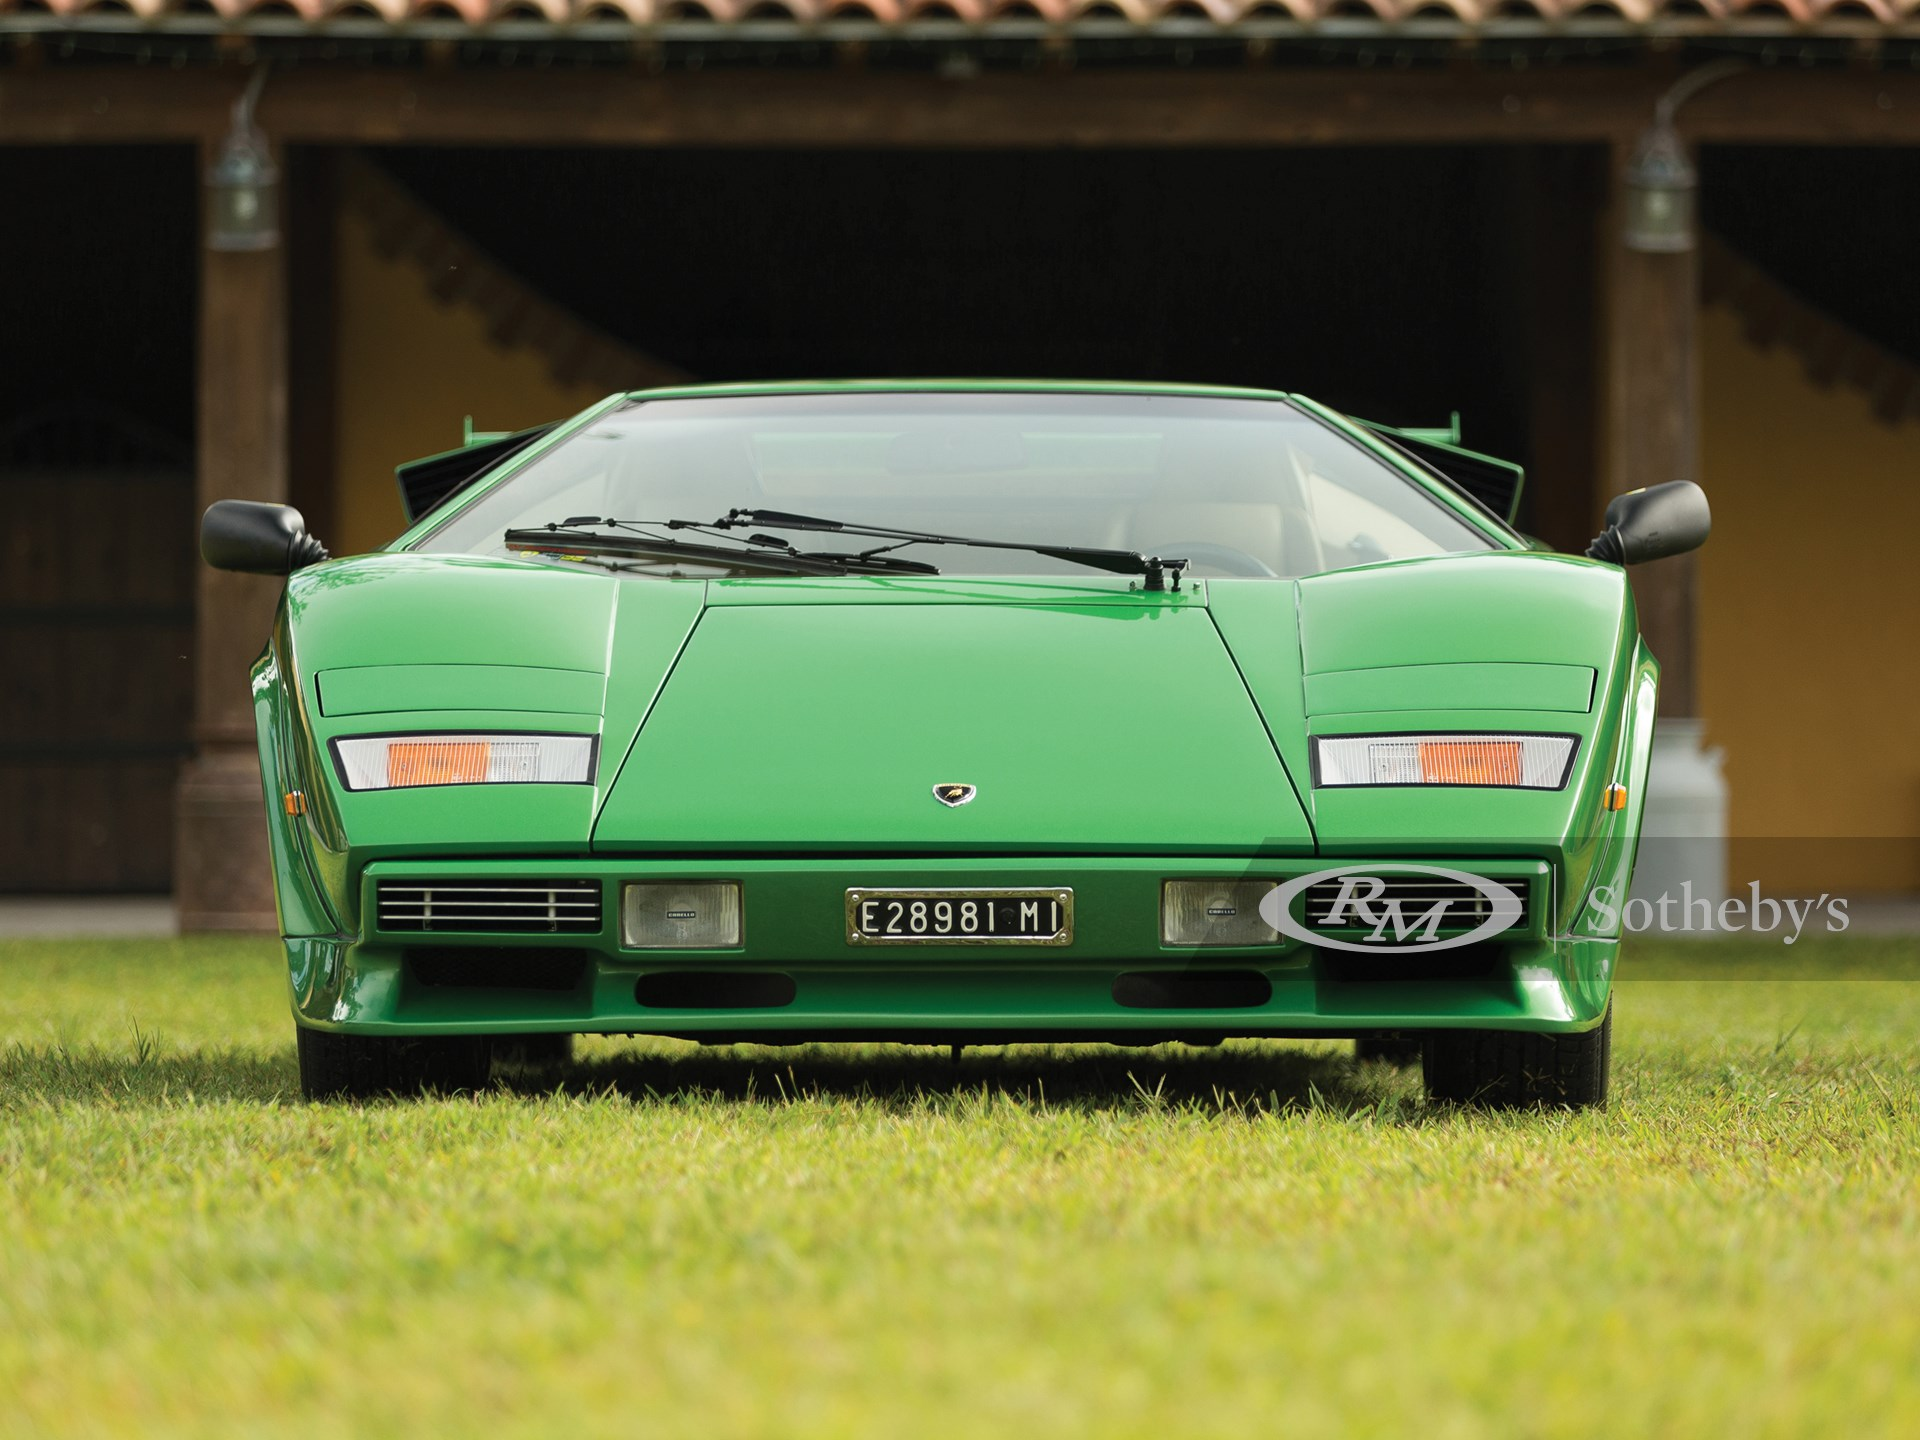 1981 Lamborghini Countach LP400 S Series III by Bertone -